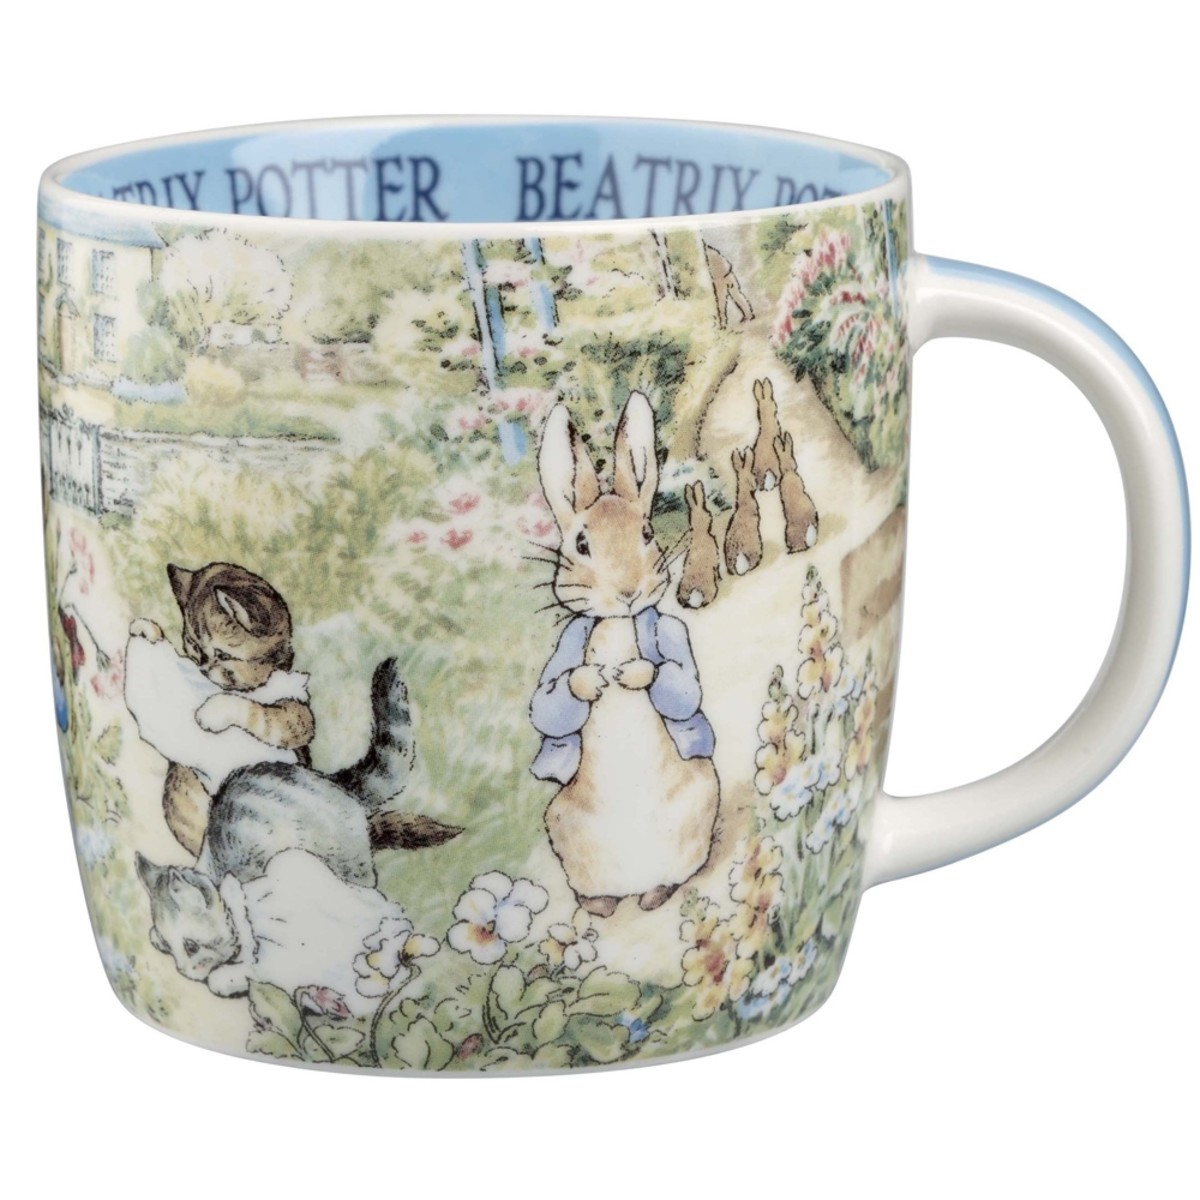 Peter Rabbit mug very similar to the one I drank from as a child.